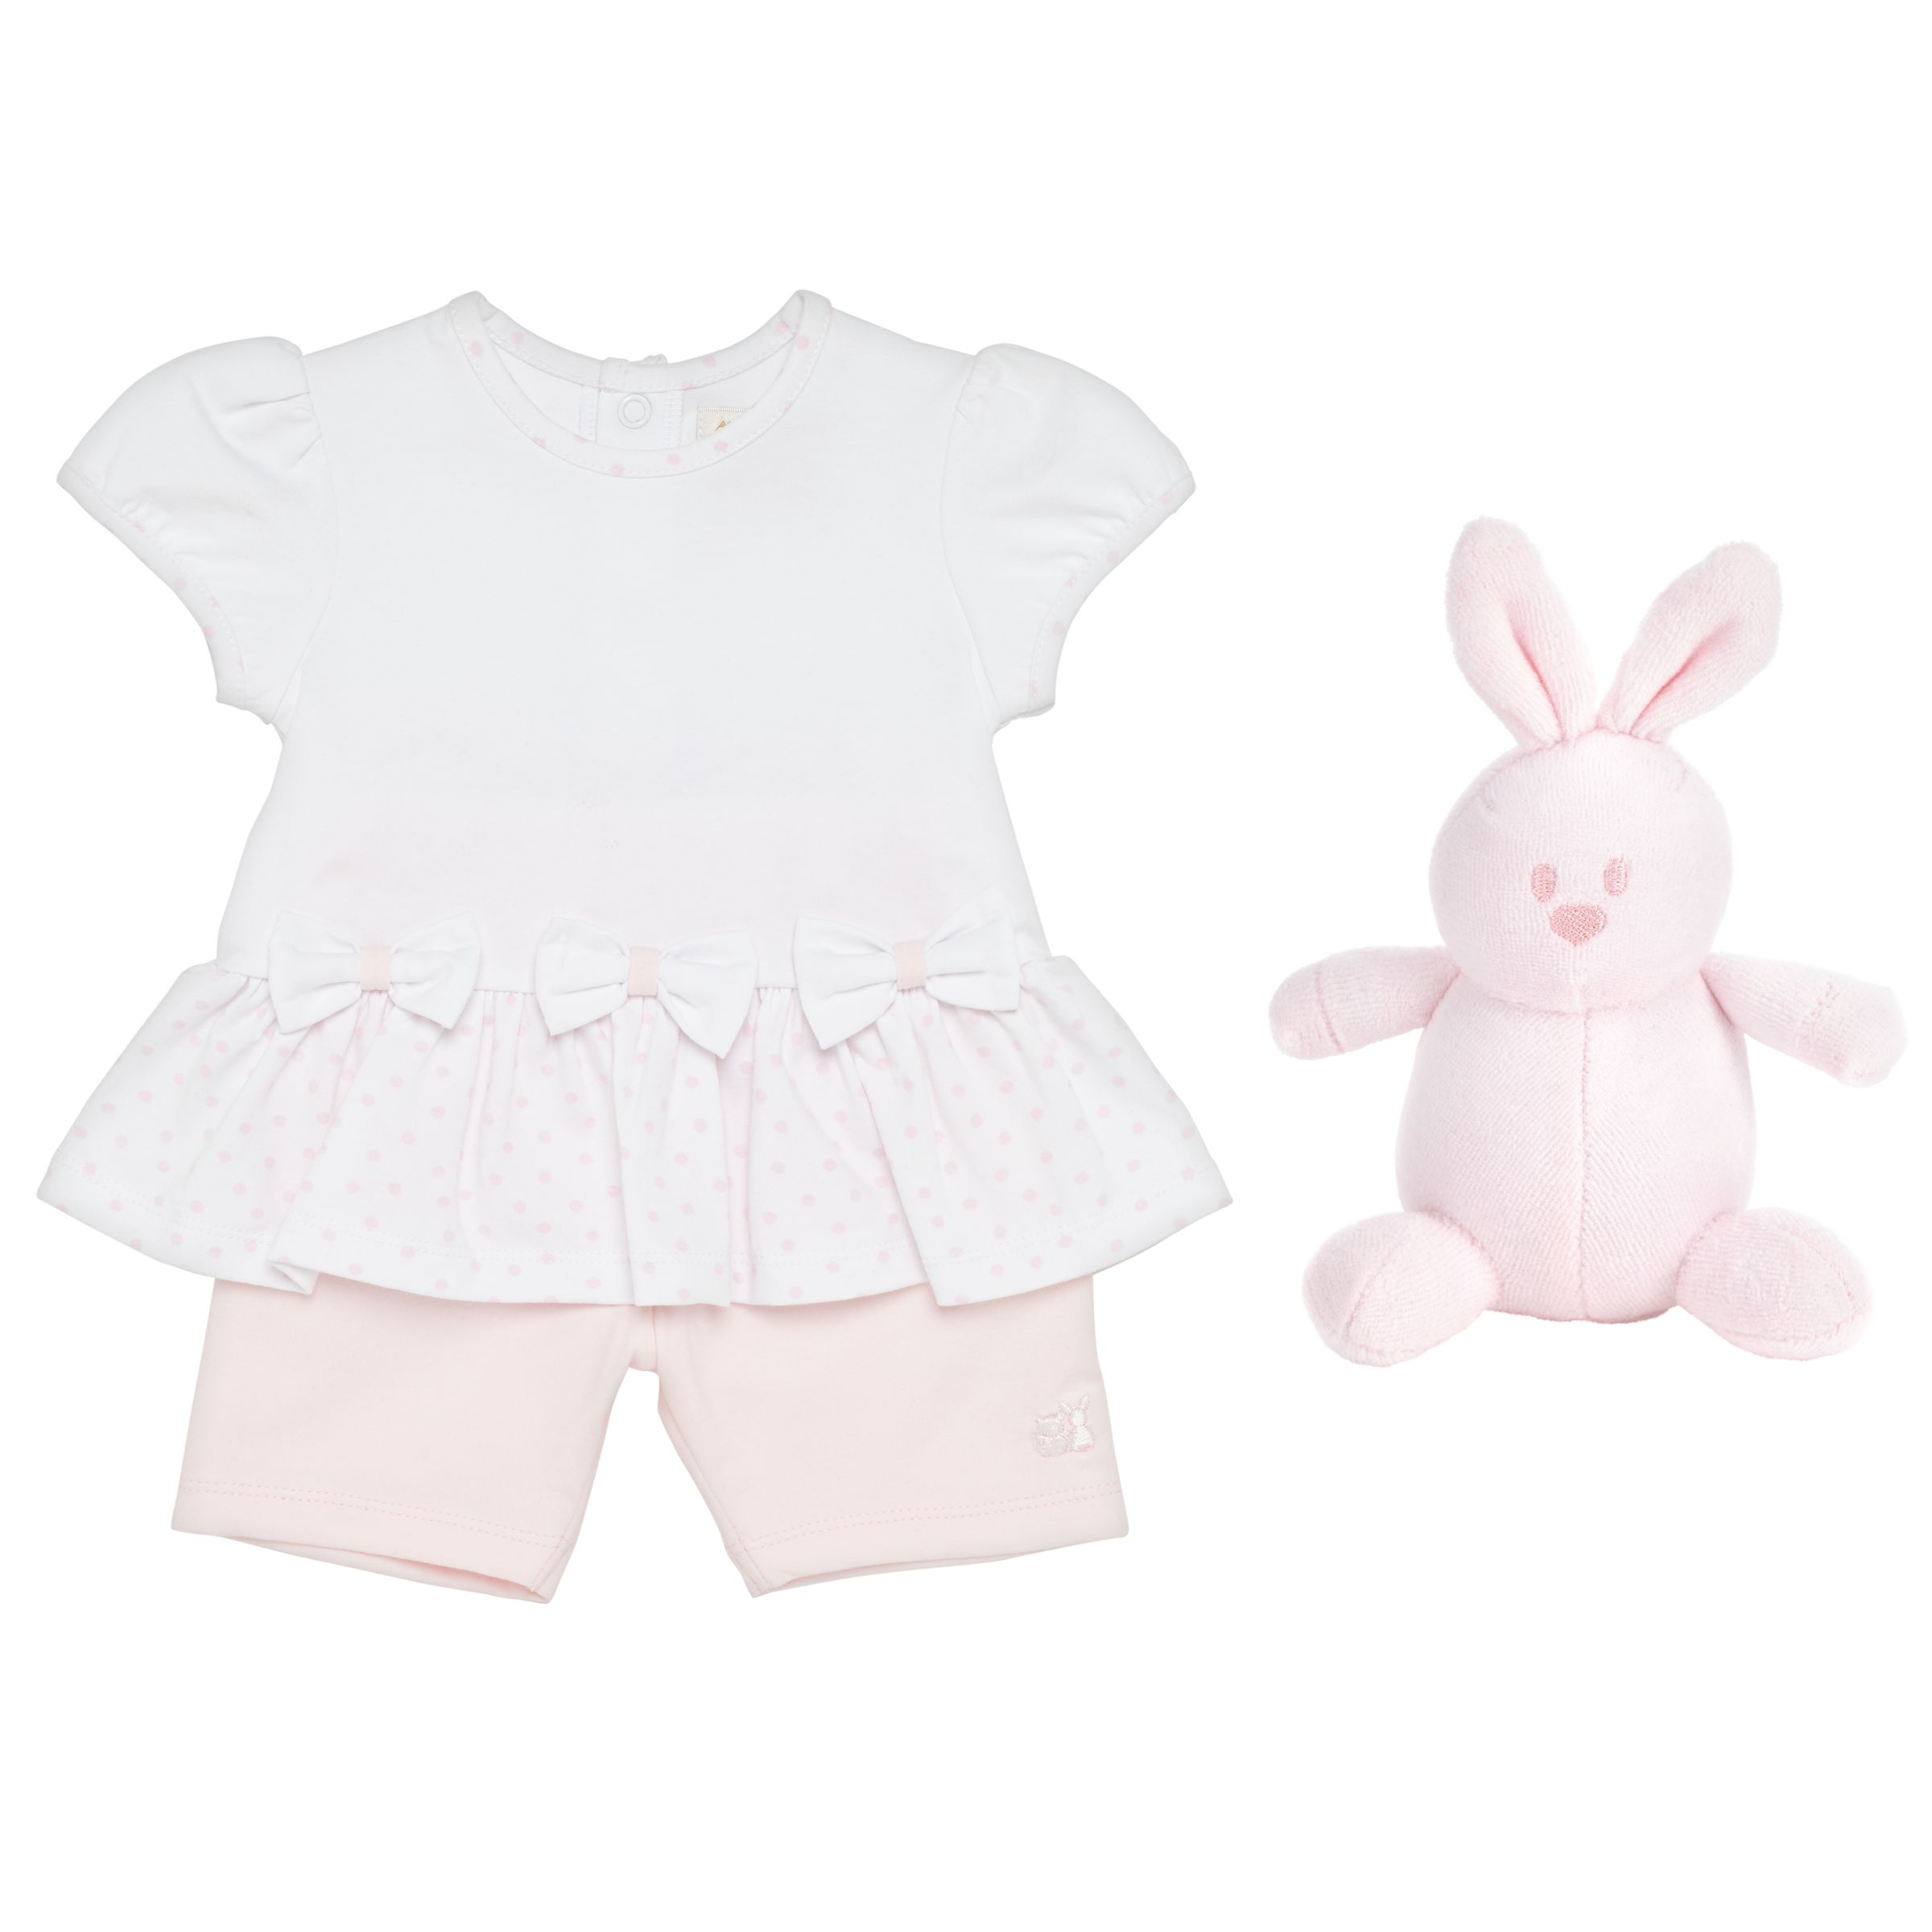 Emile et Rose Emile et Rose Baby Kassidy Two Piece Set, White/Pink